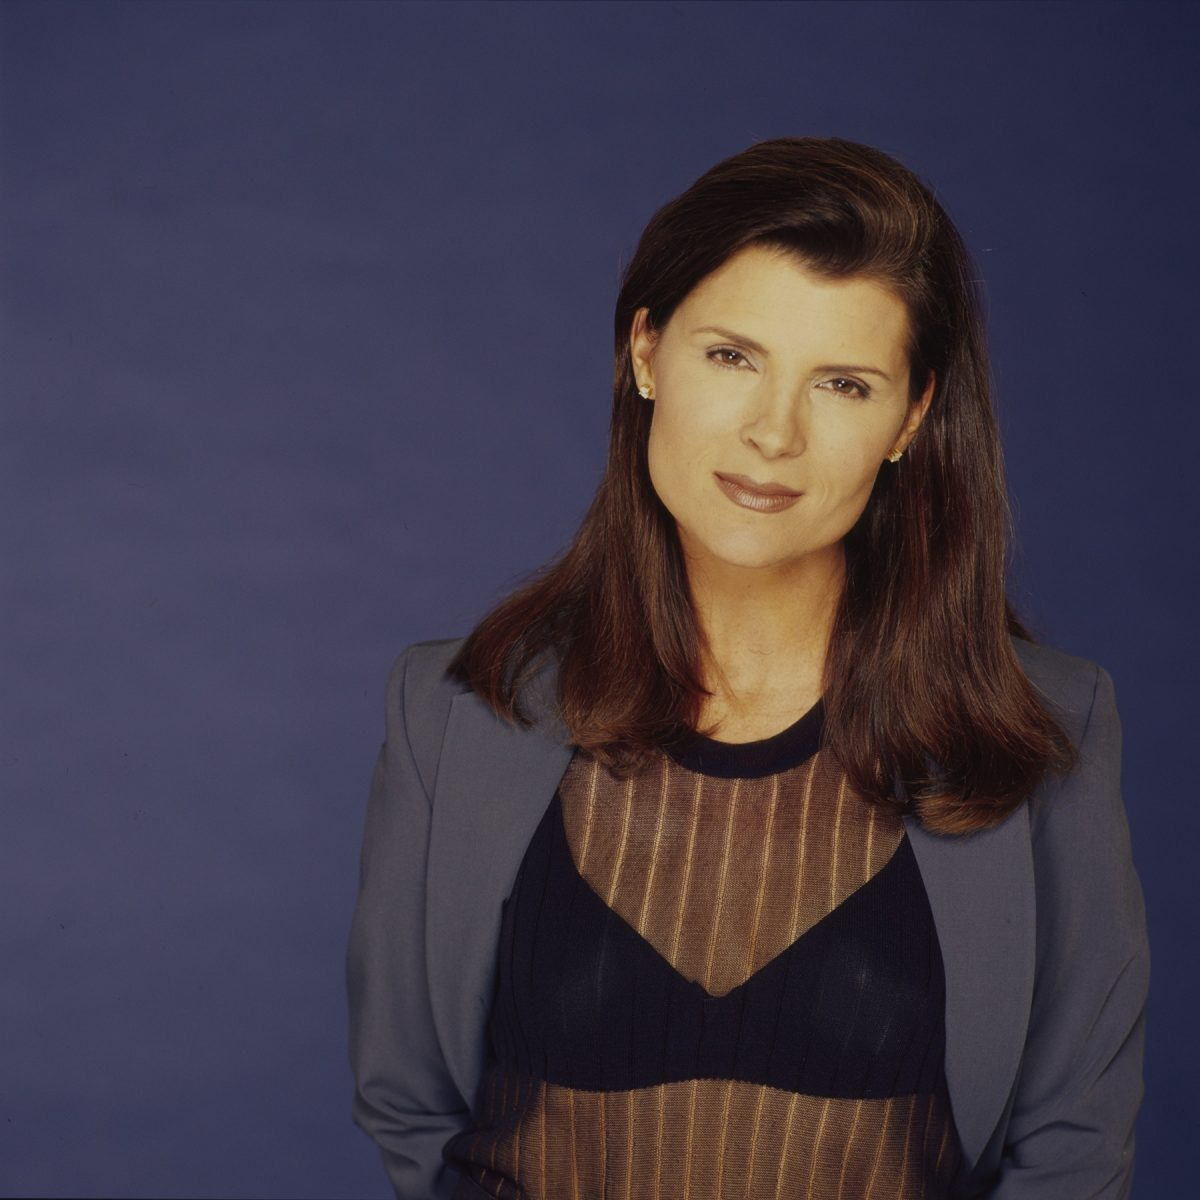 The latest The Bold and the Beautiful comings and goings talk about Kimberlin Brown's character of Sheila Carter, pictured here